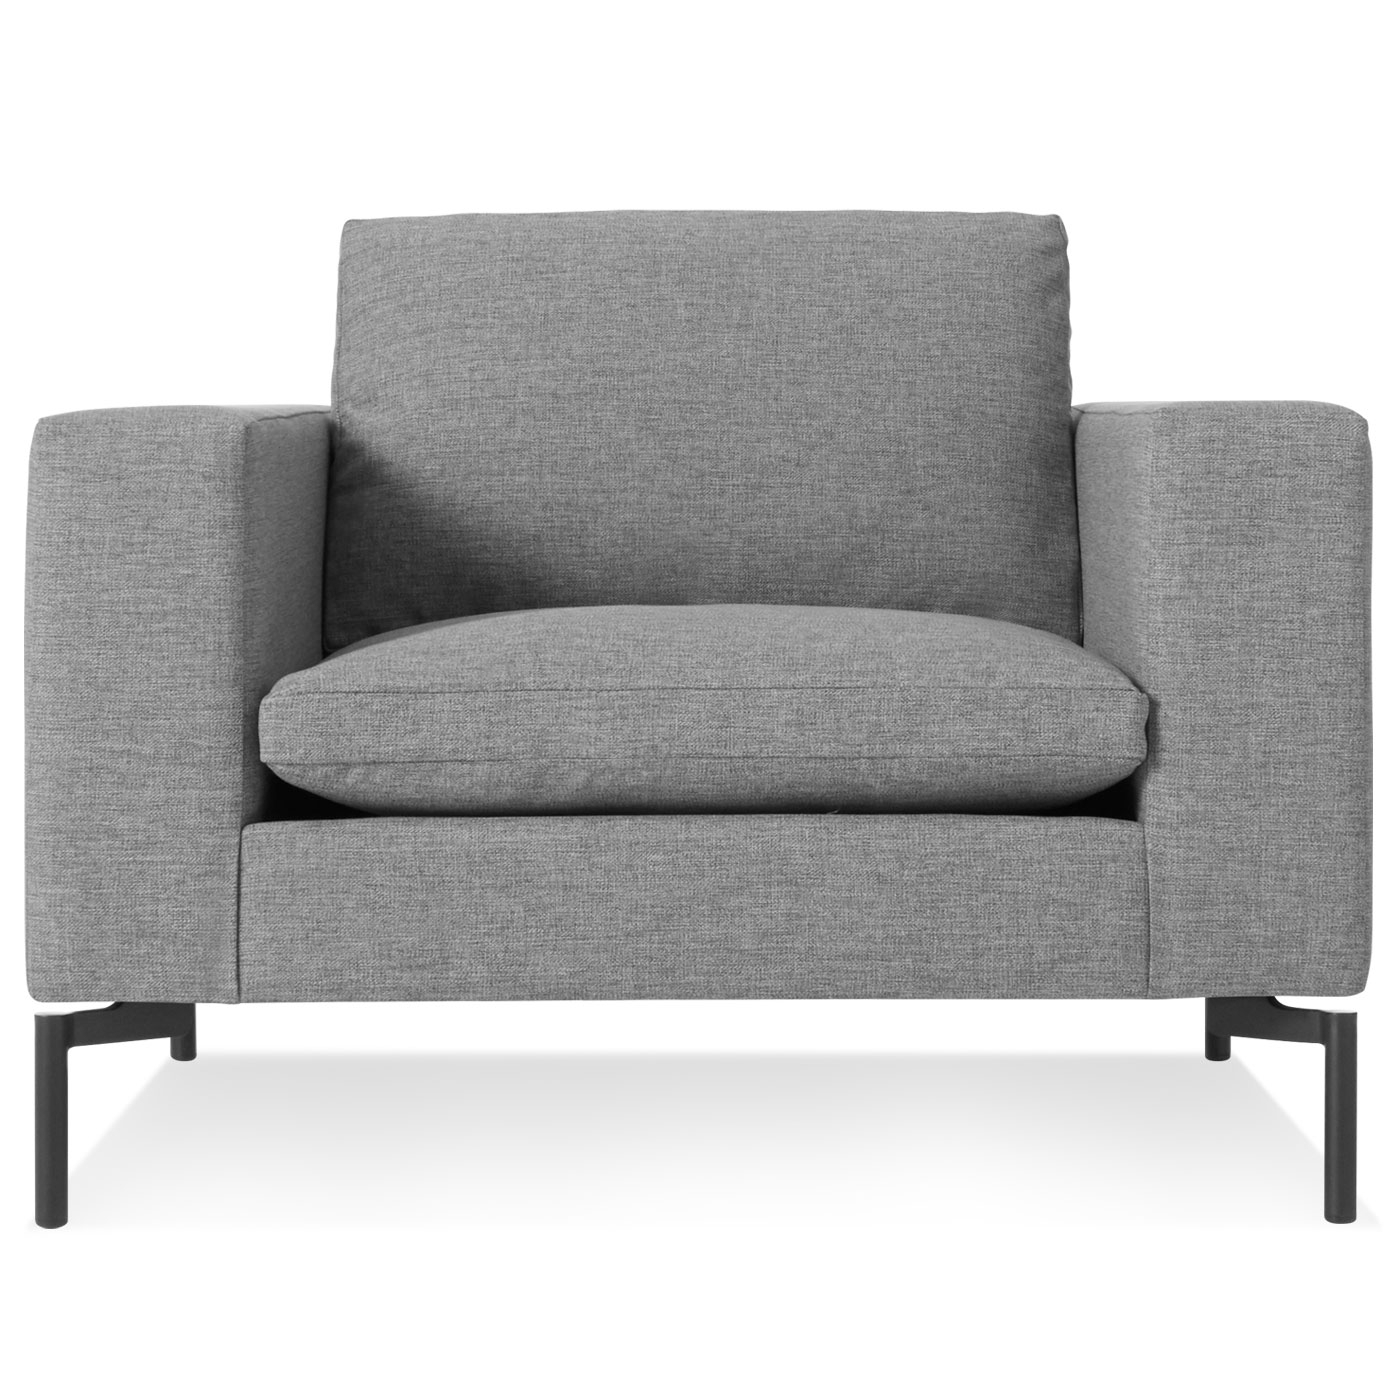 Blu Dot Regarding Fashionable Lounge Sofas And Chairs (View 10 of 20)